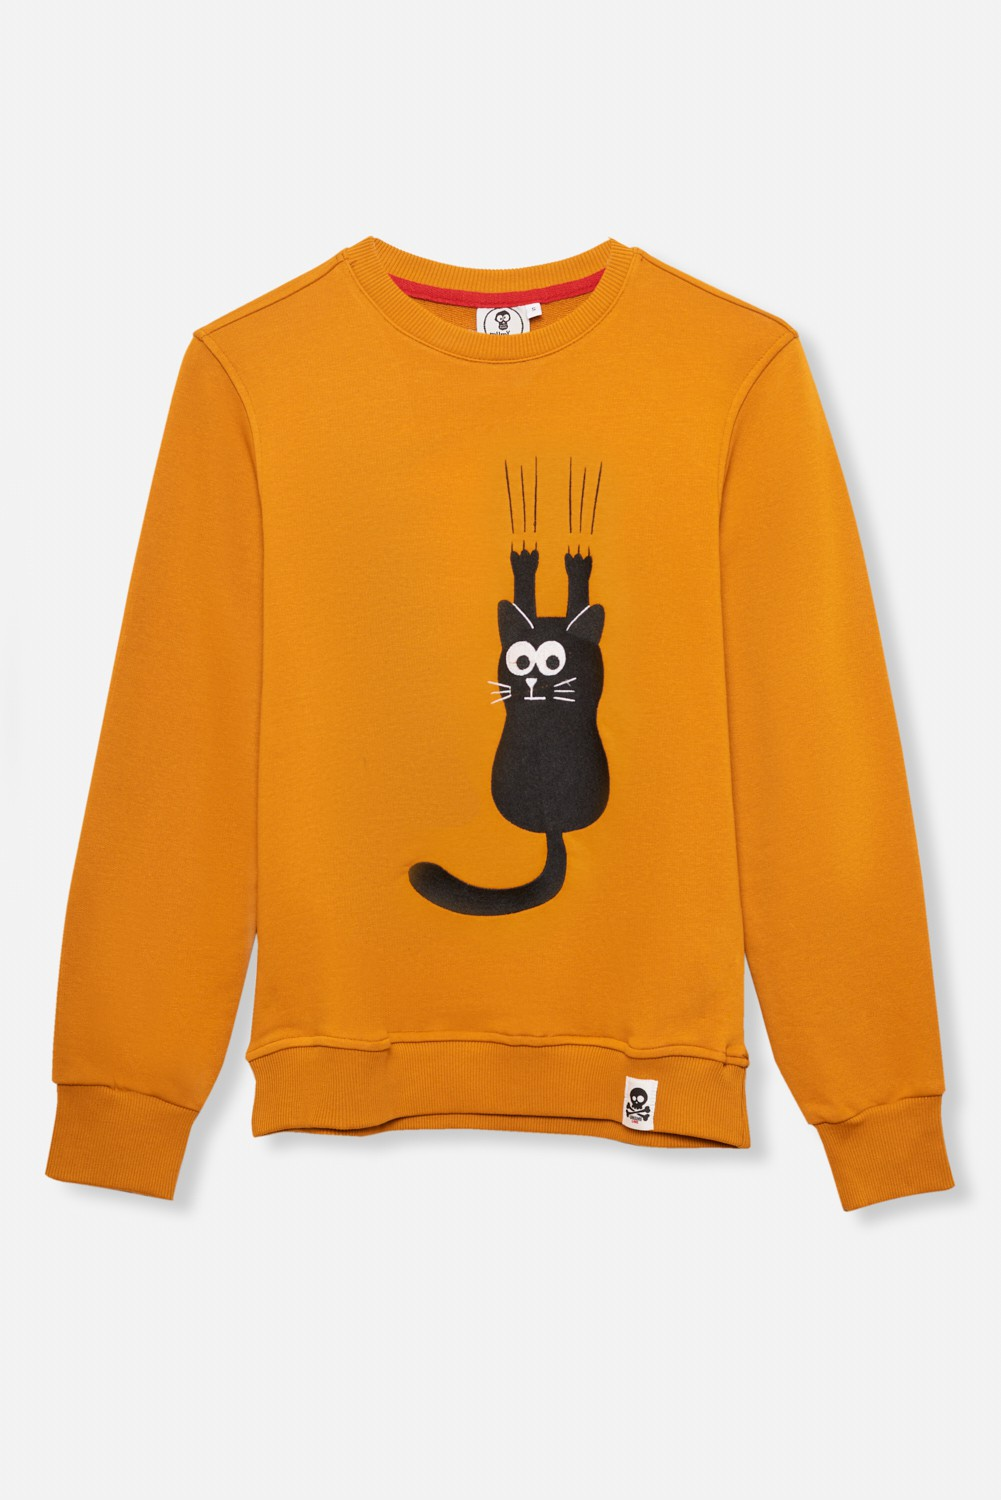 ADULT´S EMBROIDERED JERSEY UMAMI LINE SCRATCH CAT